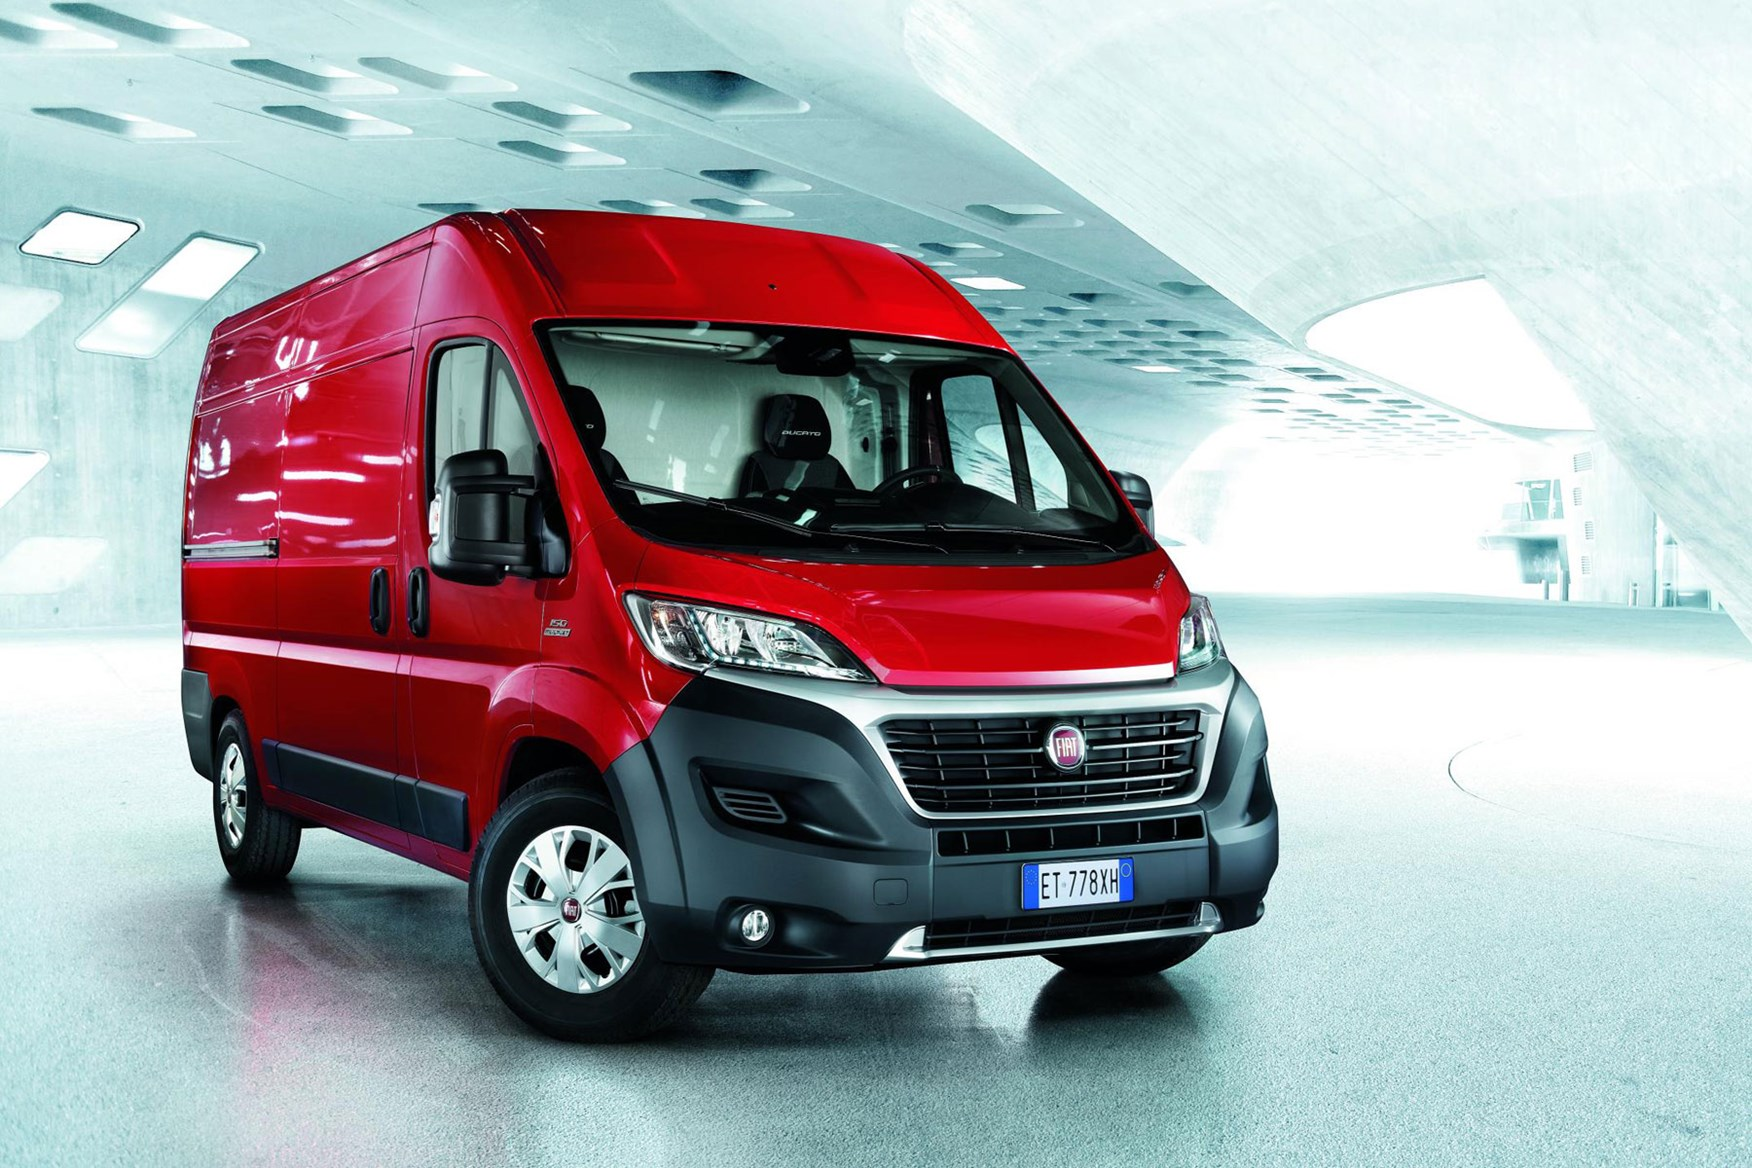 3336e6a24f ... Fiat Ducato - best large 3.5t vans for payload ...